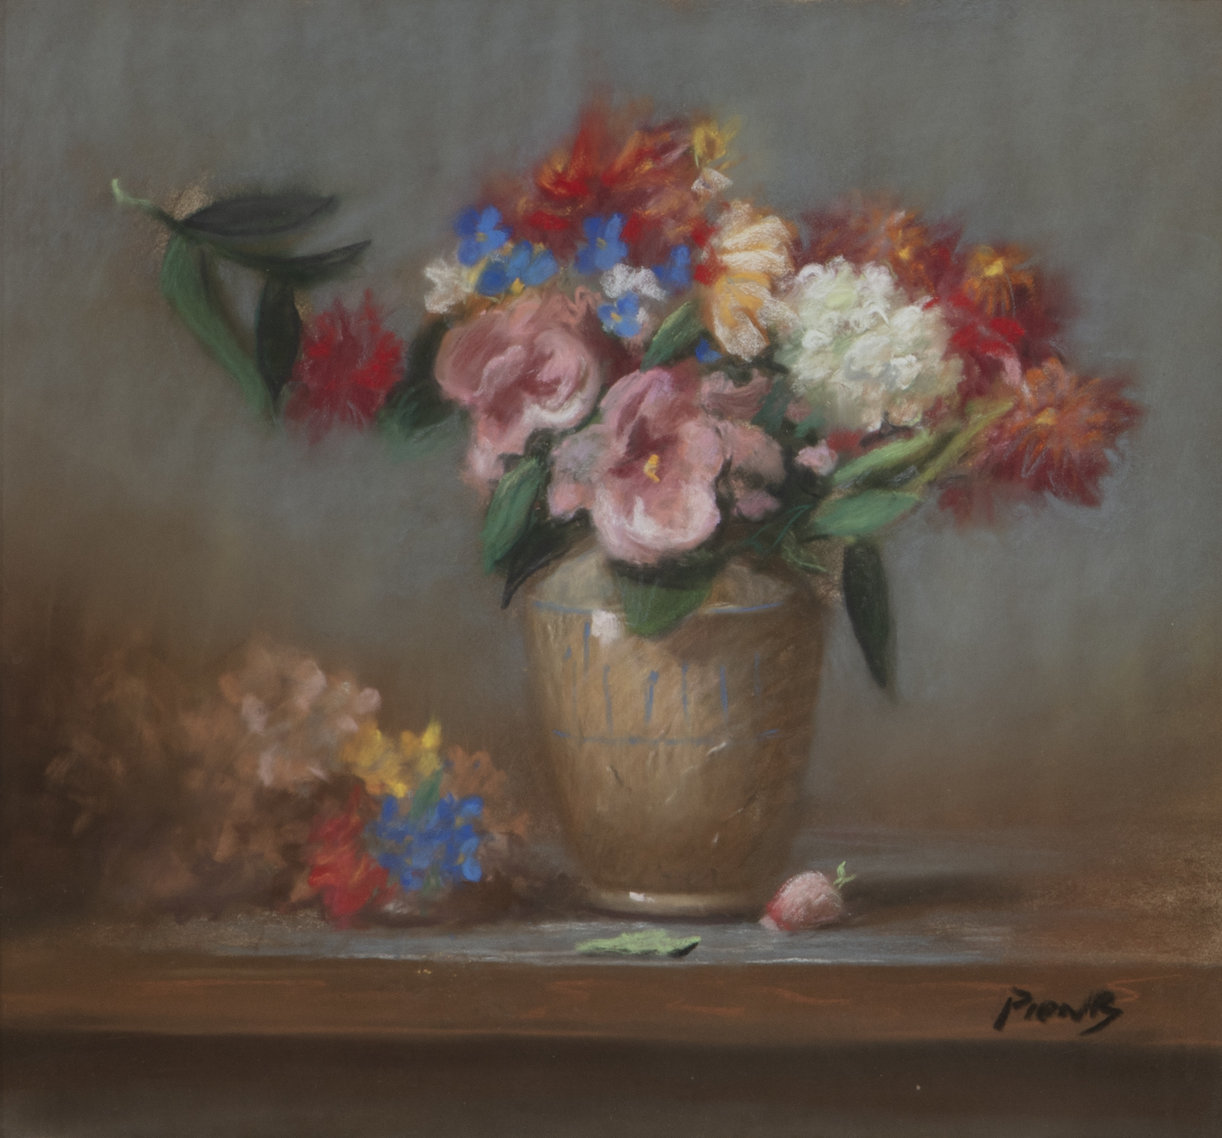 Pastel on paper by Richard Pionk (American, 1936-2007), titled Still life with flowers in a vase, circa 1905, signed 'Pionk' lower right (est. $150-$250).